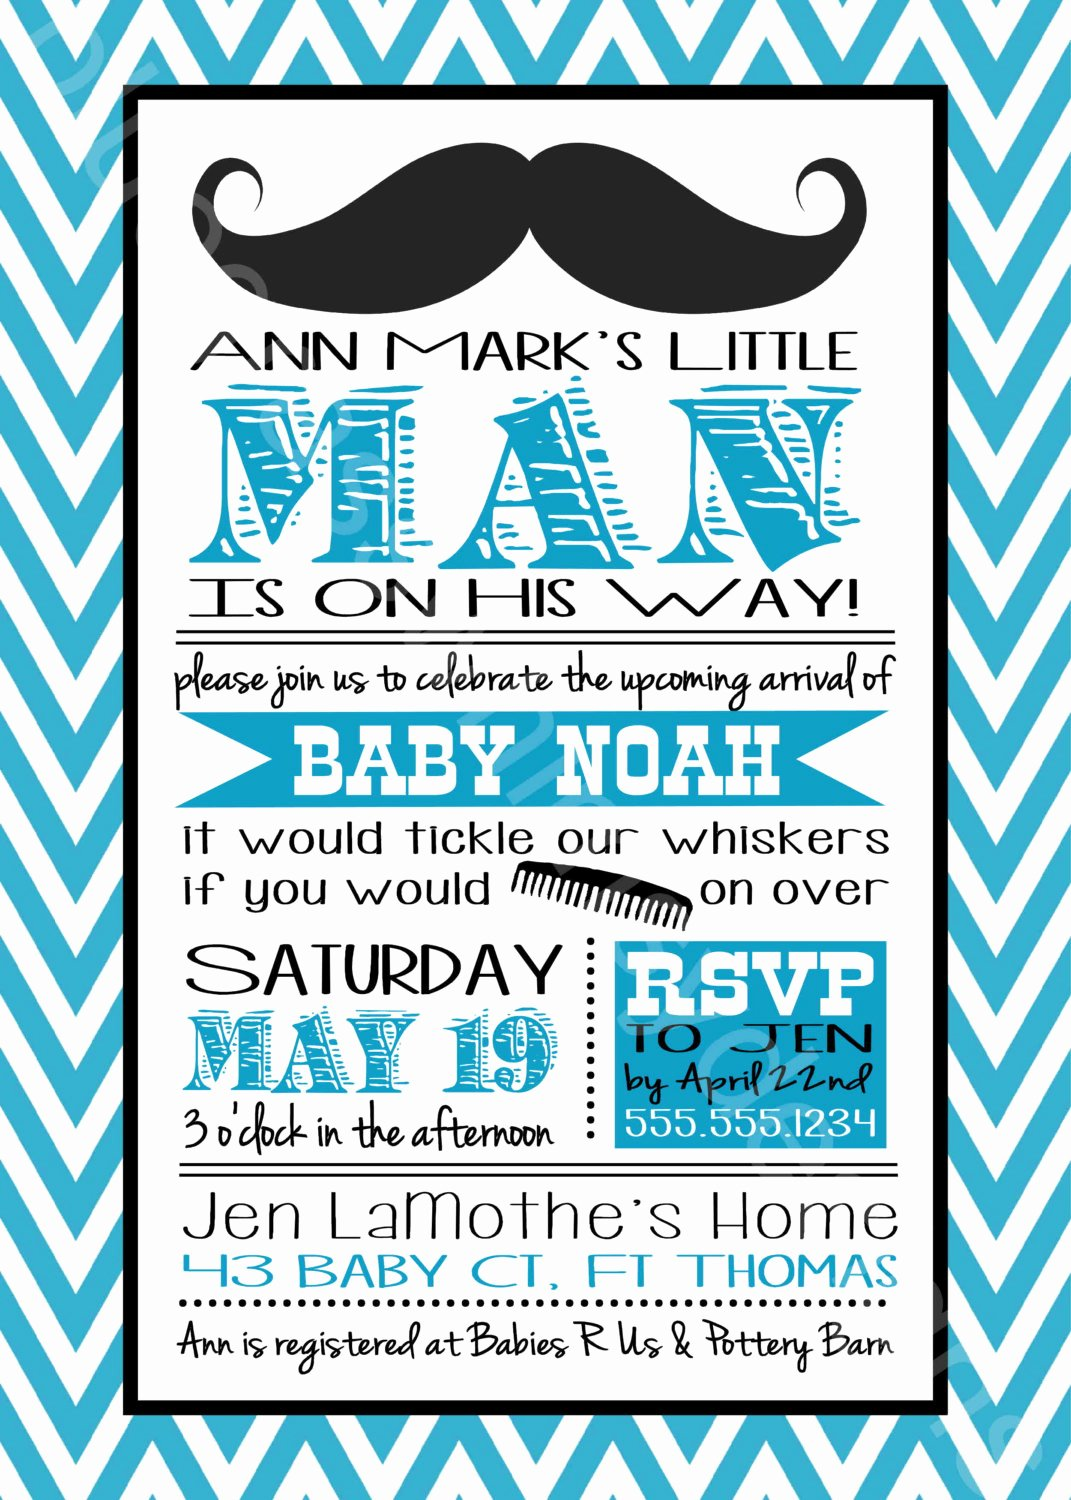 Baby Boy Invitations Free Elegant Mustache Little Man Baby Shower Invitation for A Baby Boy